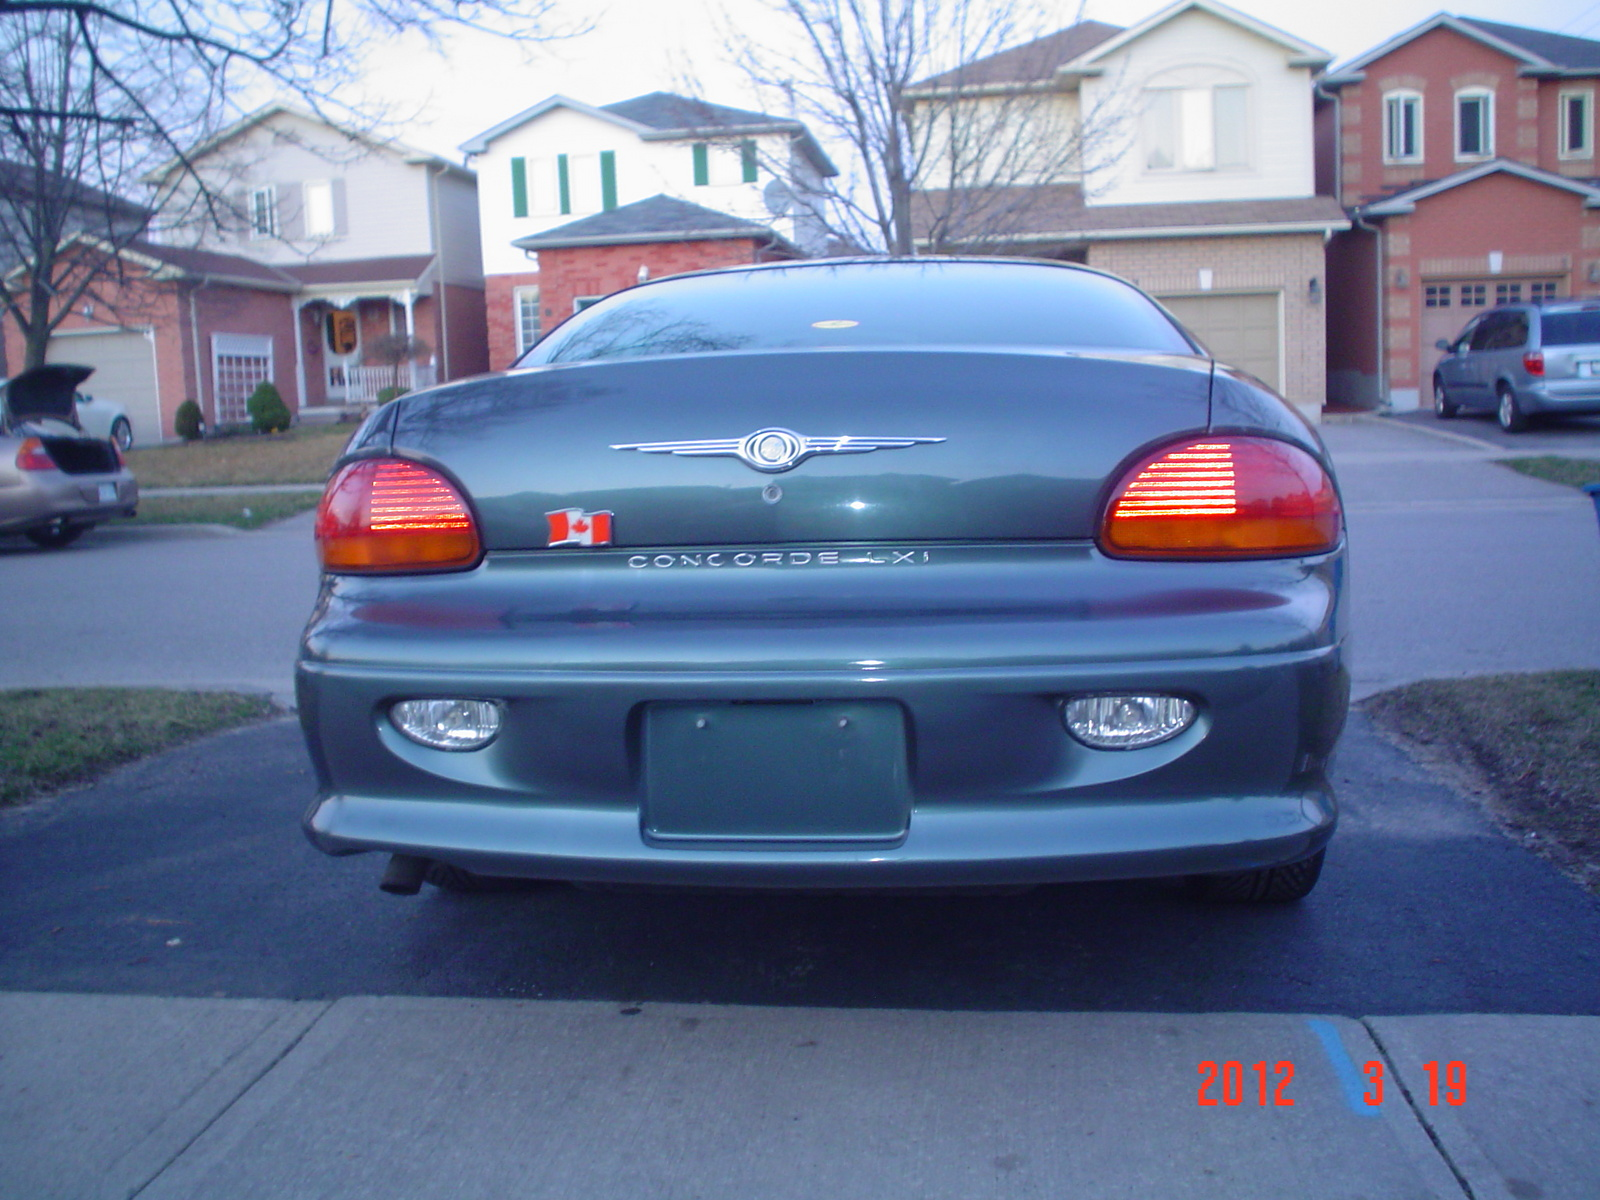 2002 Chrysler Concorde - Pictures - 2002 Chrysler Concorde LXi pic ...